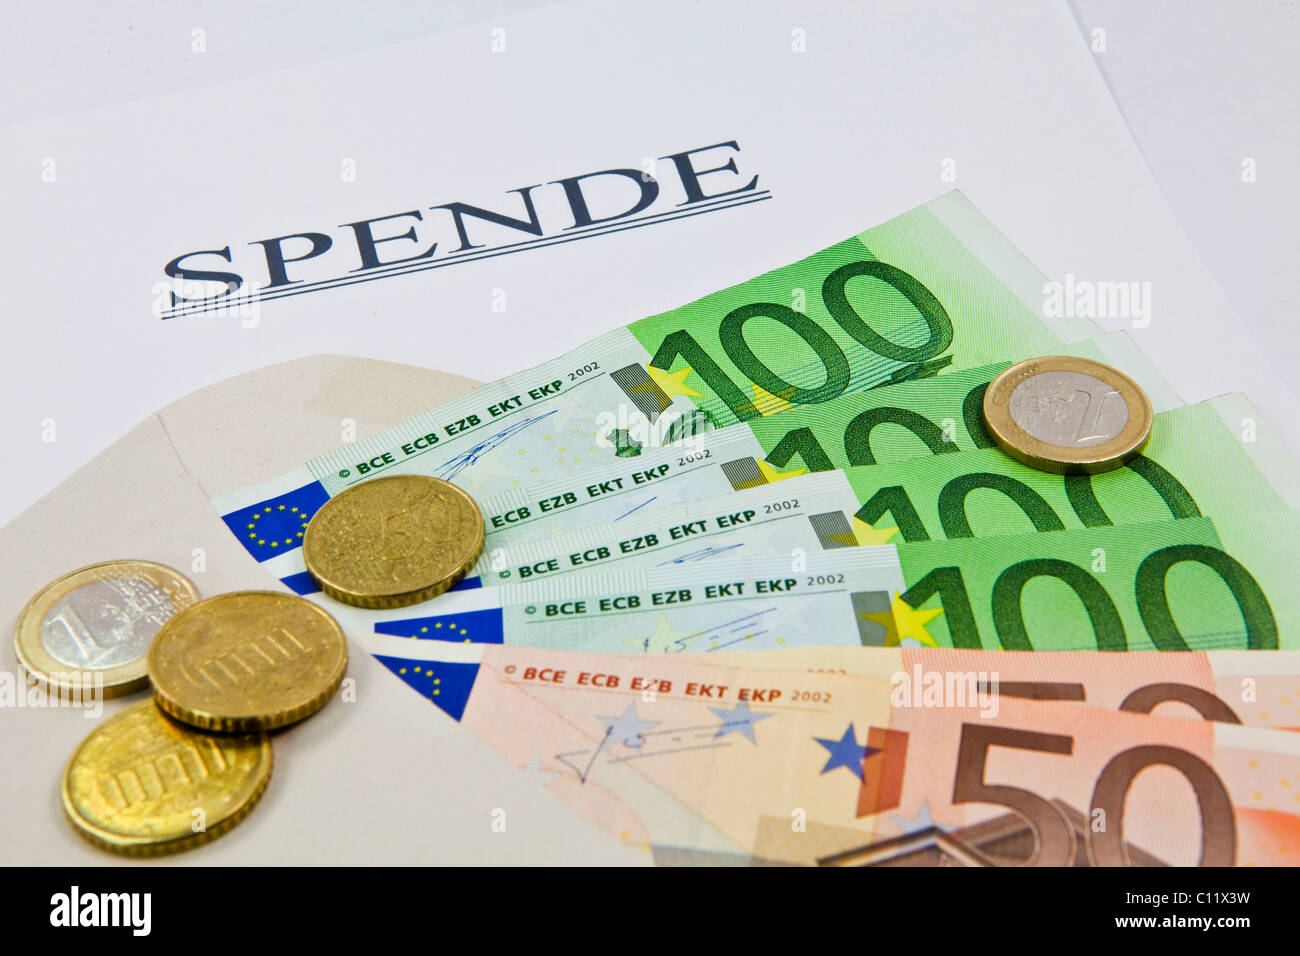 Envelope with euro banknotes and coins for a donation - Stock Image